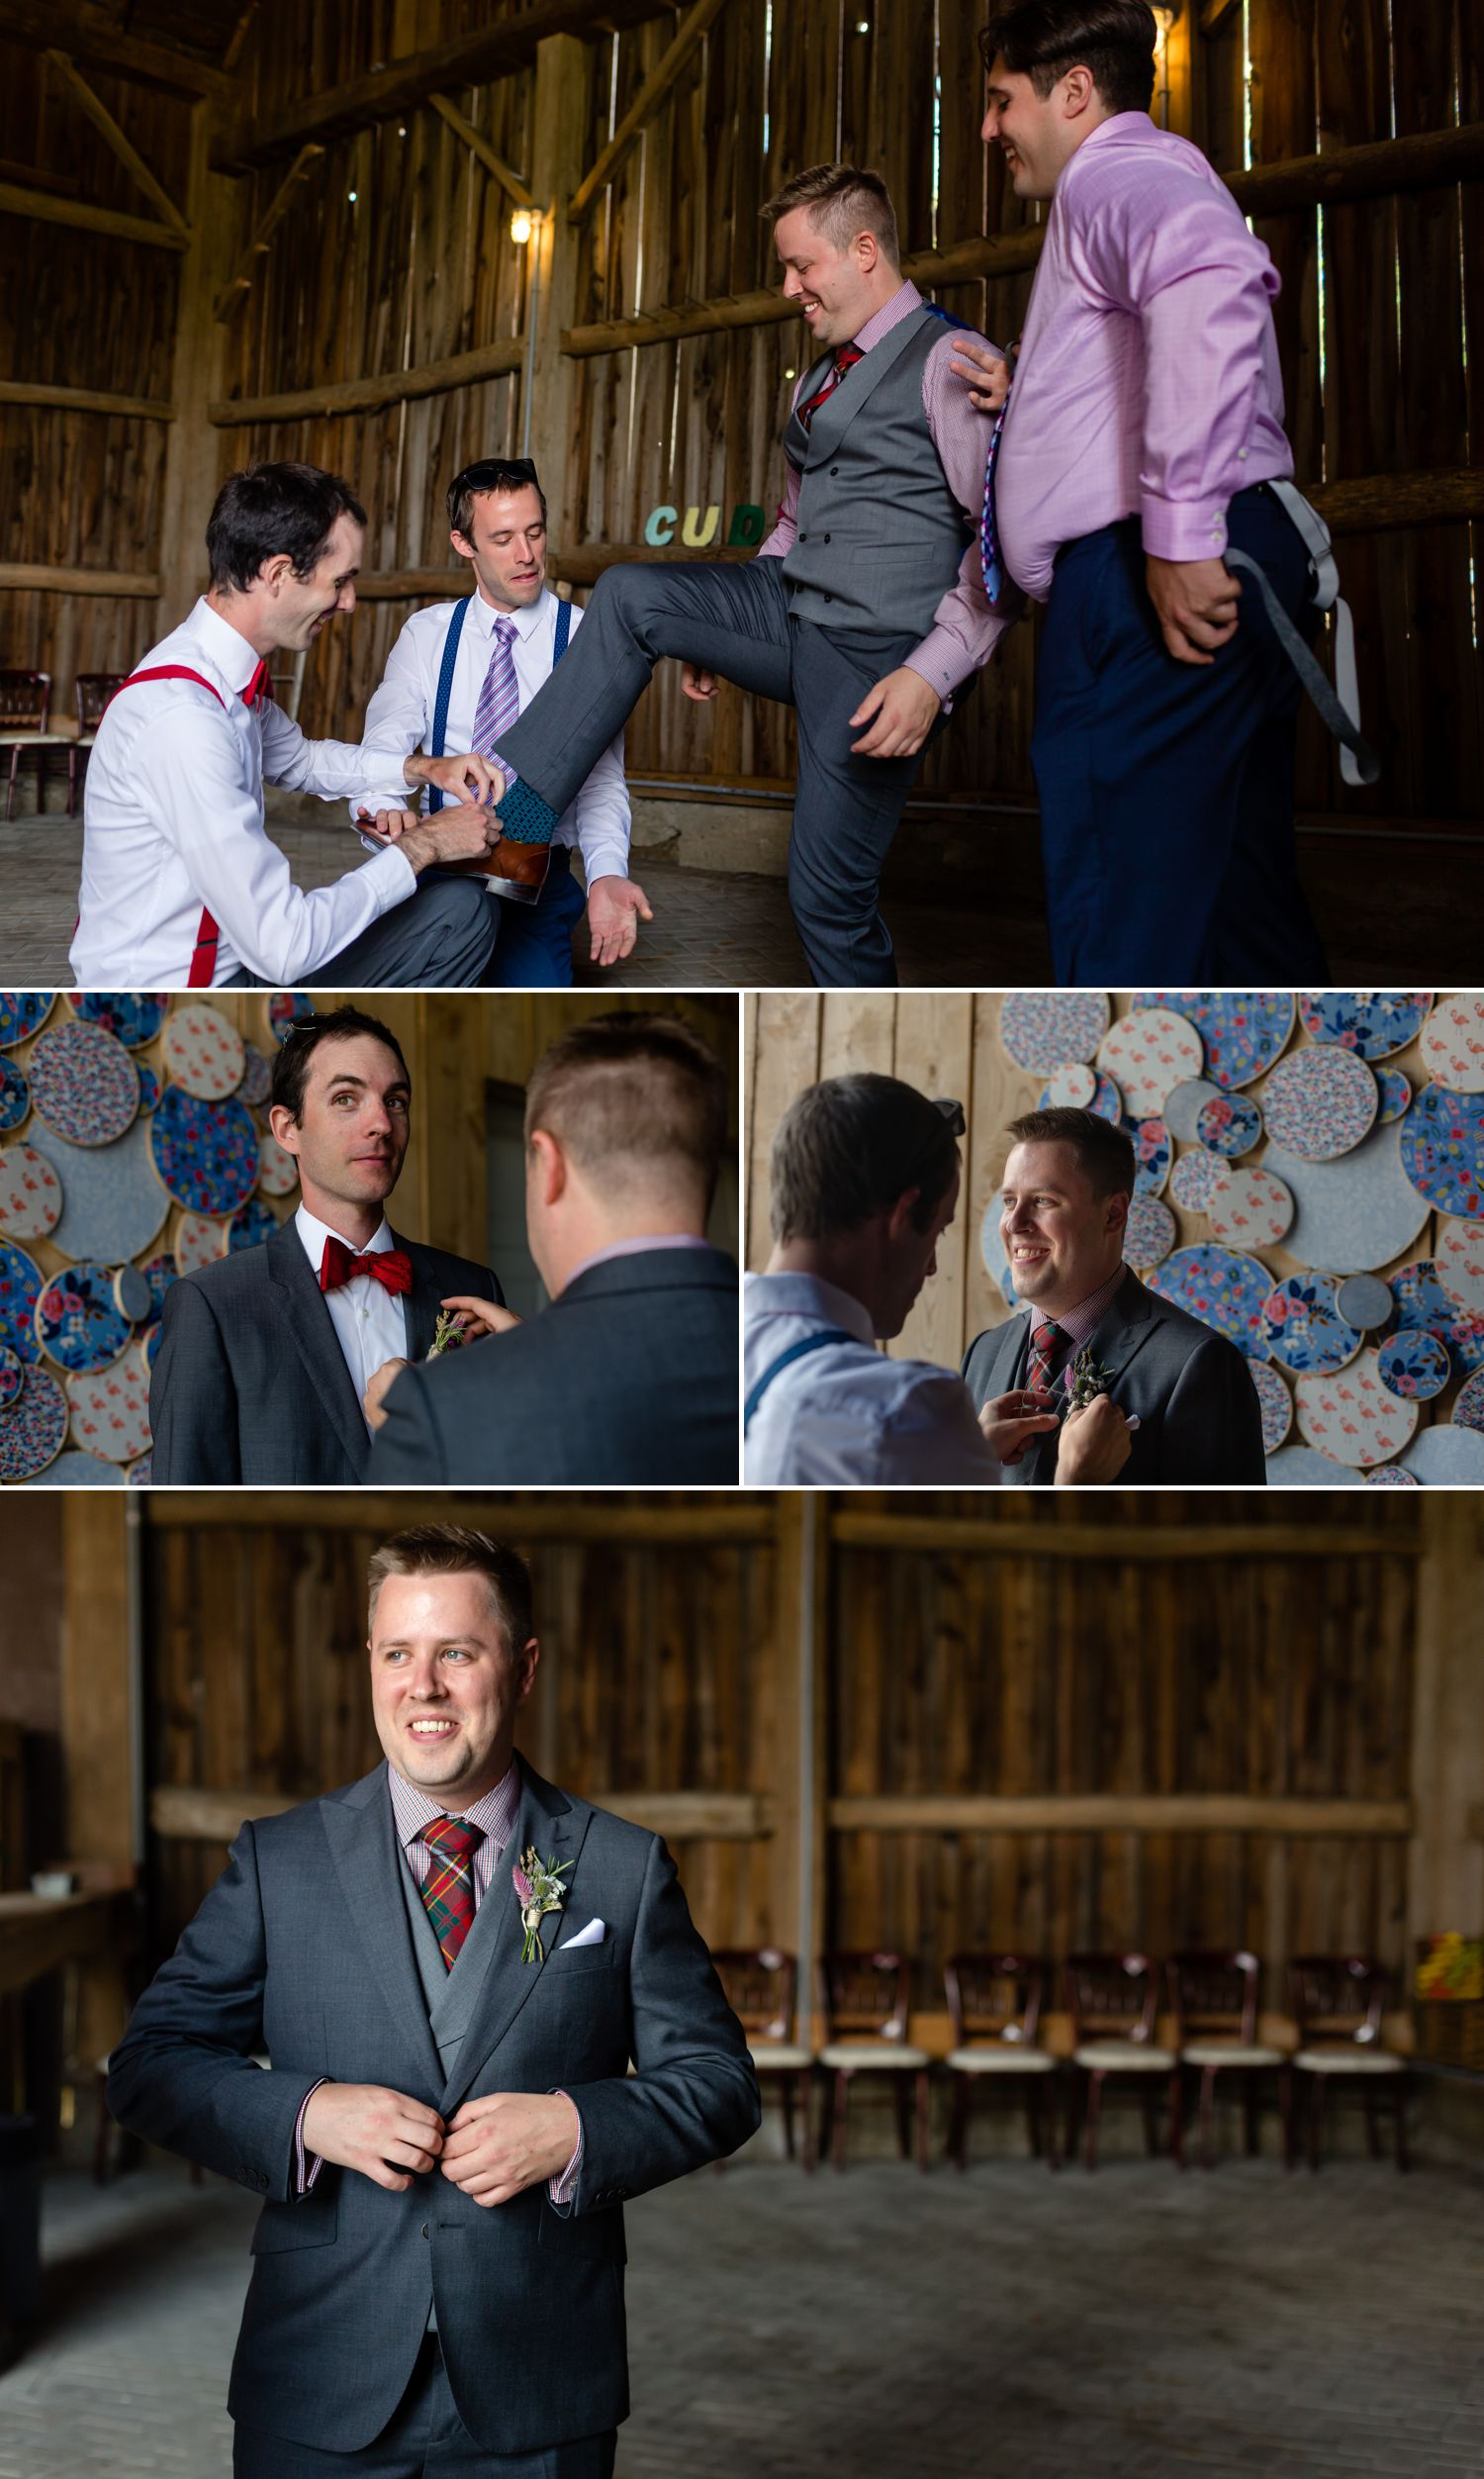 The groom and his groomsmen getting ready at Haymow Farm in Ottawa